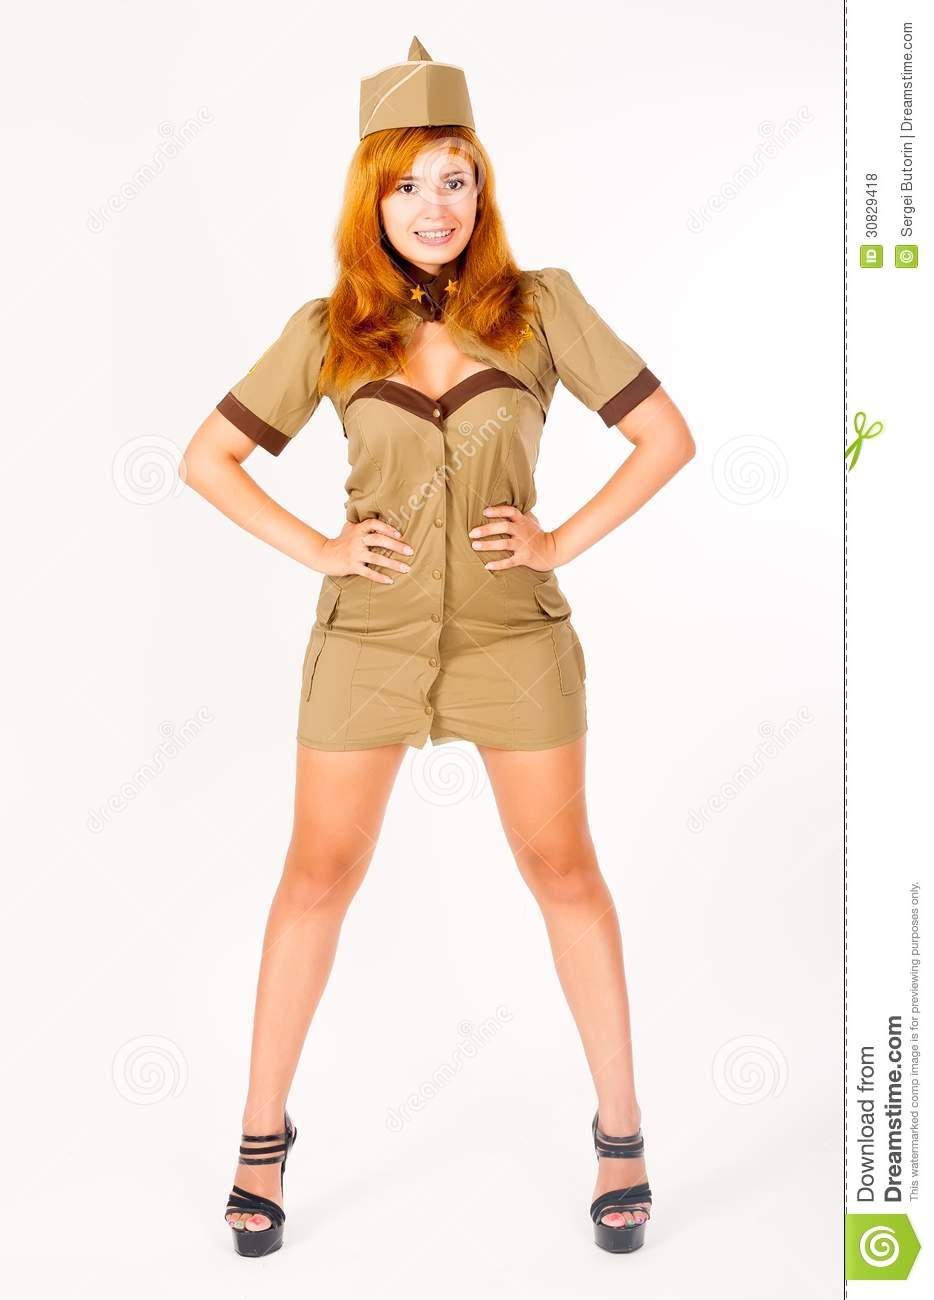 Bella donna in uniforme militare